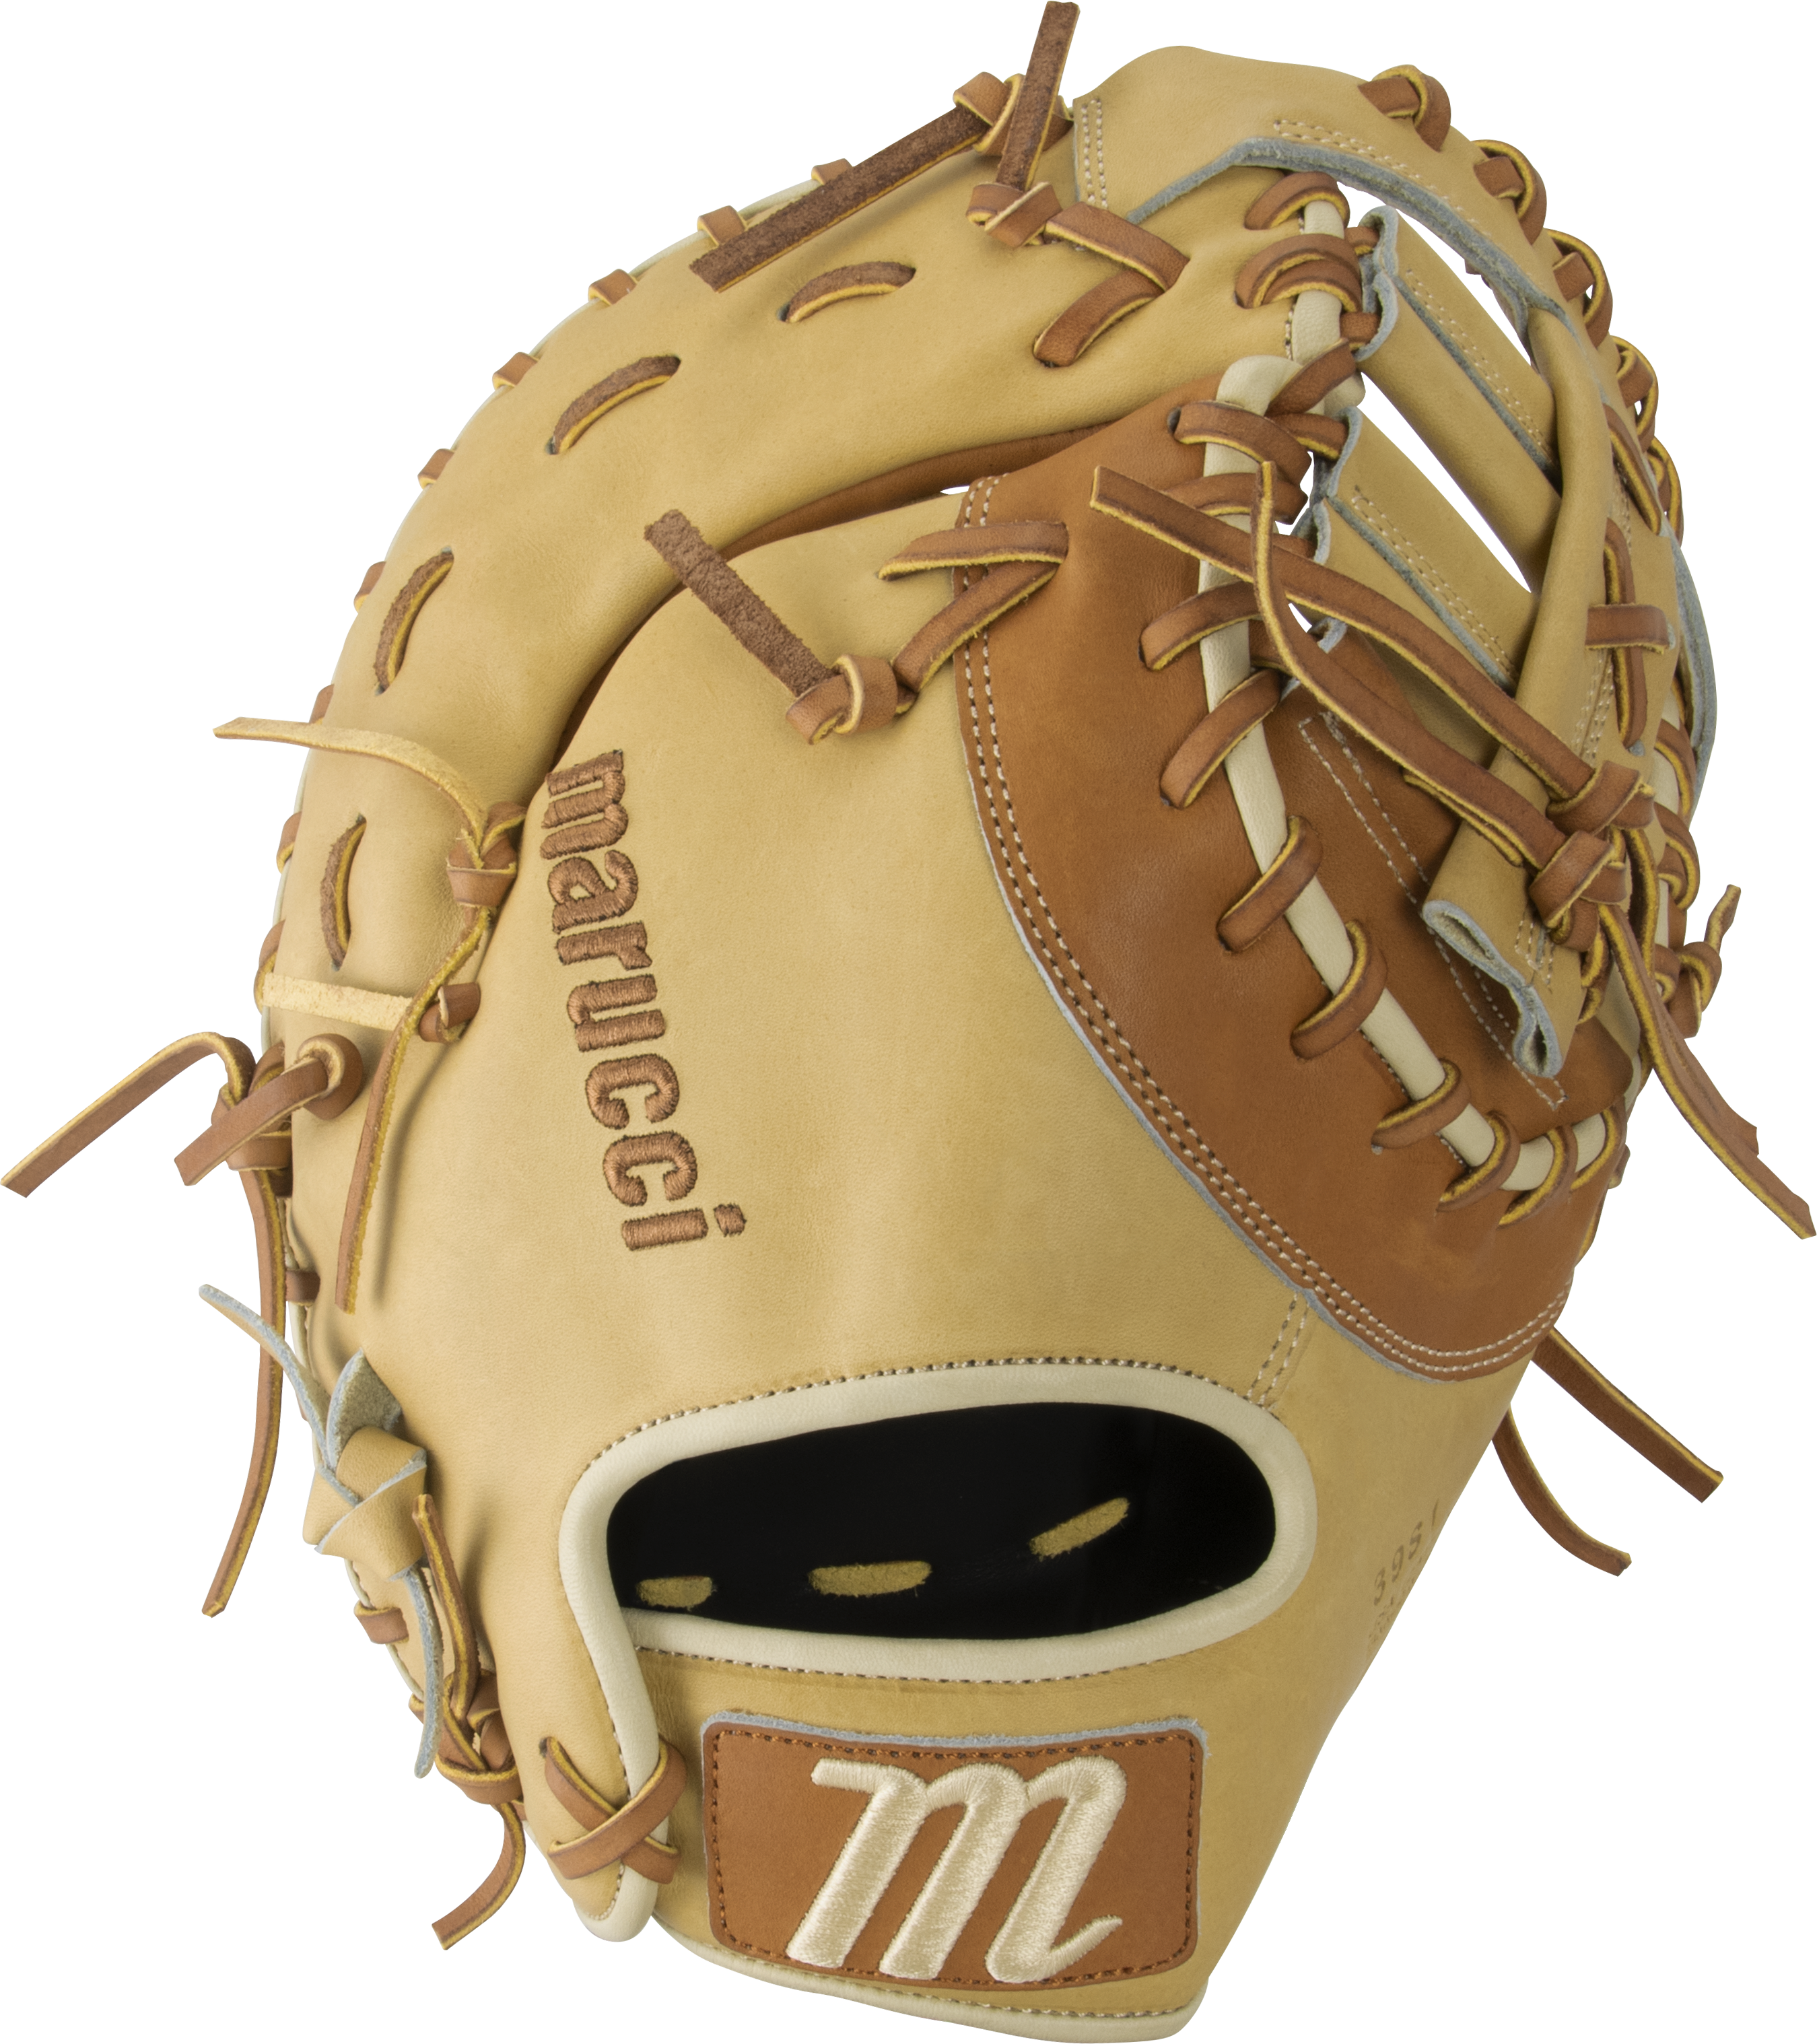 marucci-cypress-13-baseball-glove-39s1-first-base-mitt-post-web-right-hand-throw MFGCY39S1-SMTF-RightHandThrow   849817099438 • Premium Japanese-tanned steerhide leather provides stiffness and rugged durability •